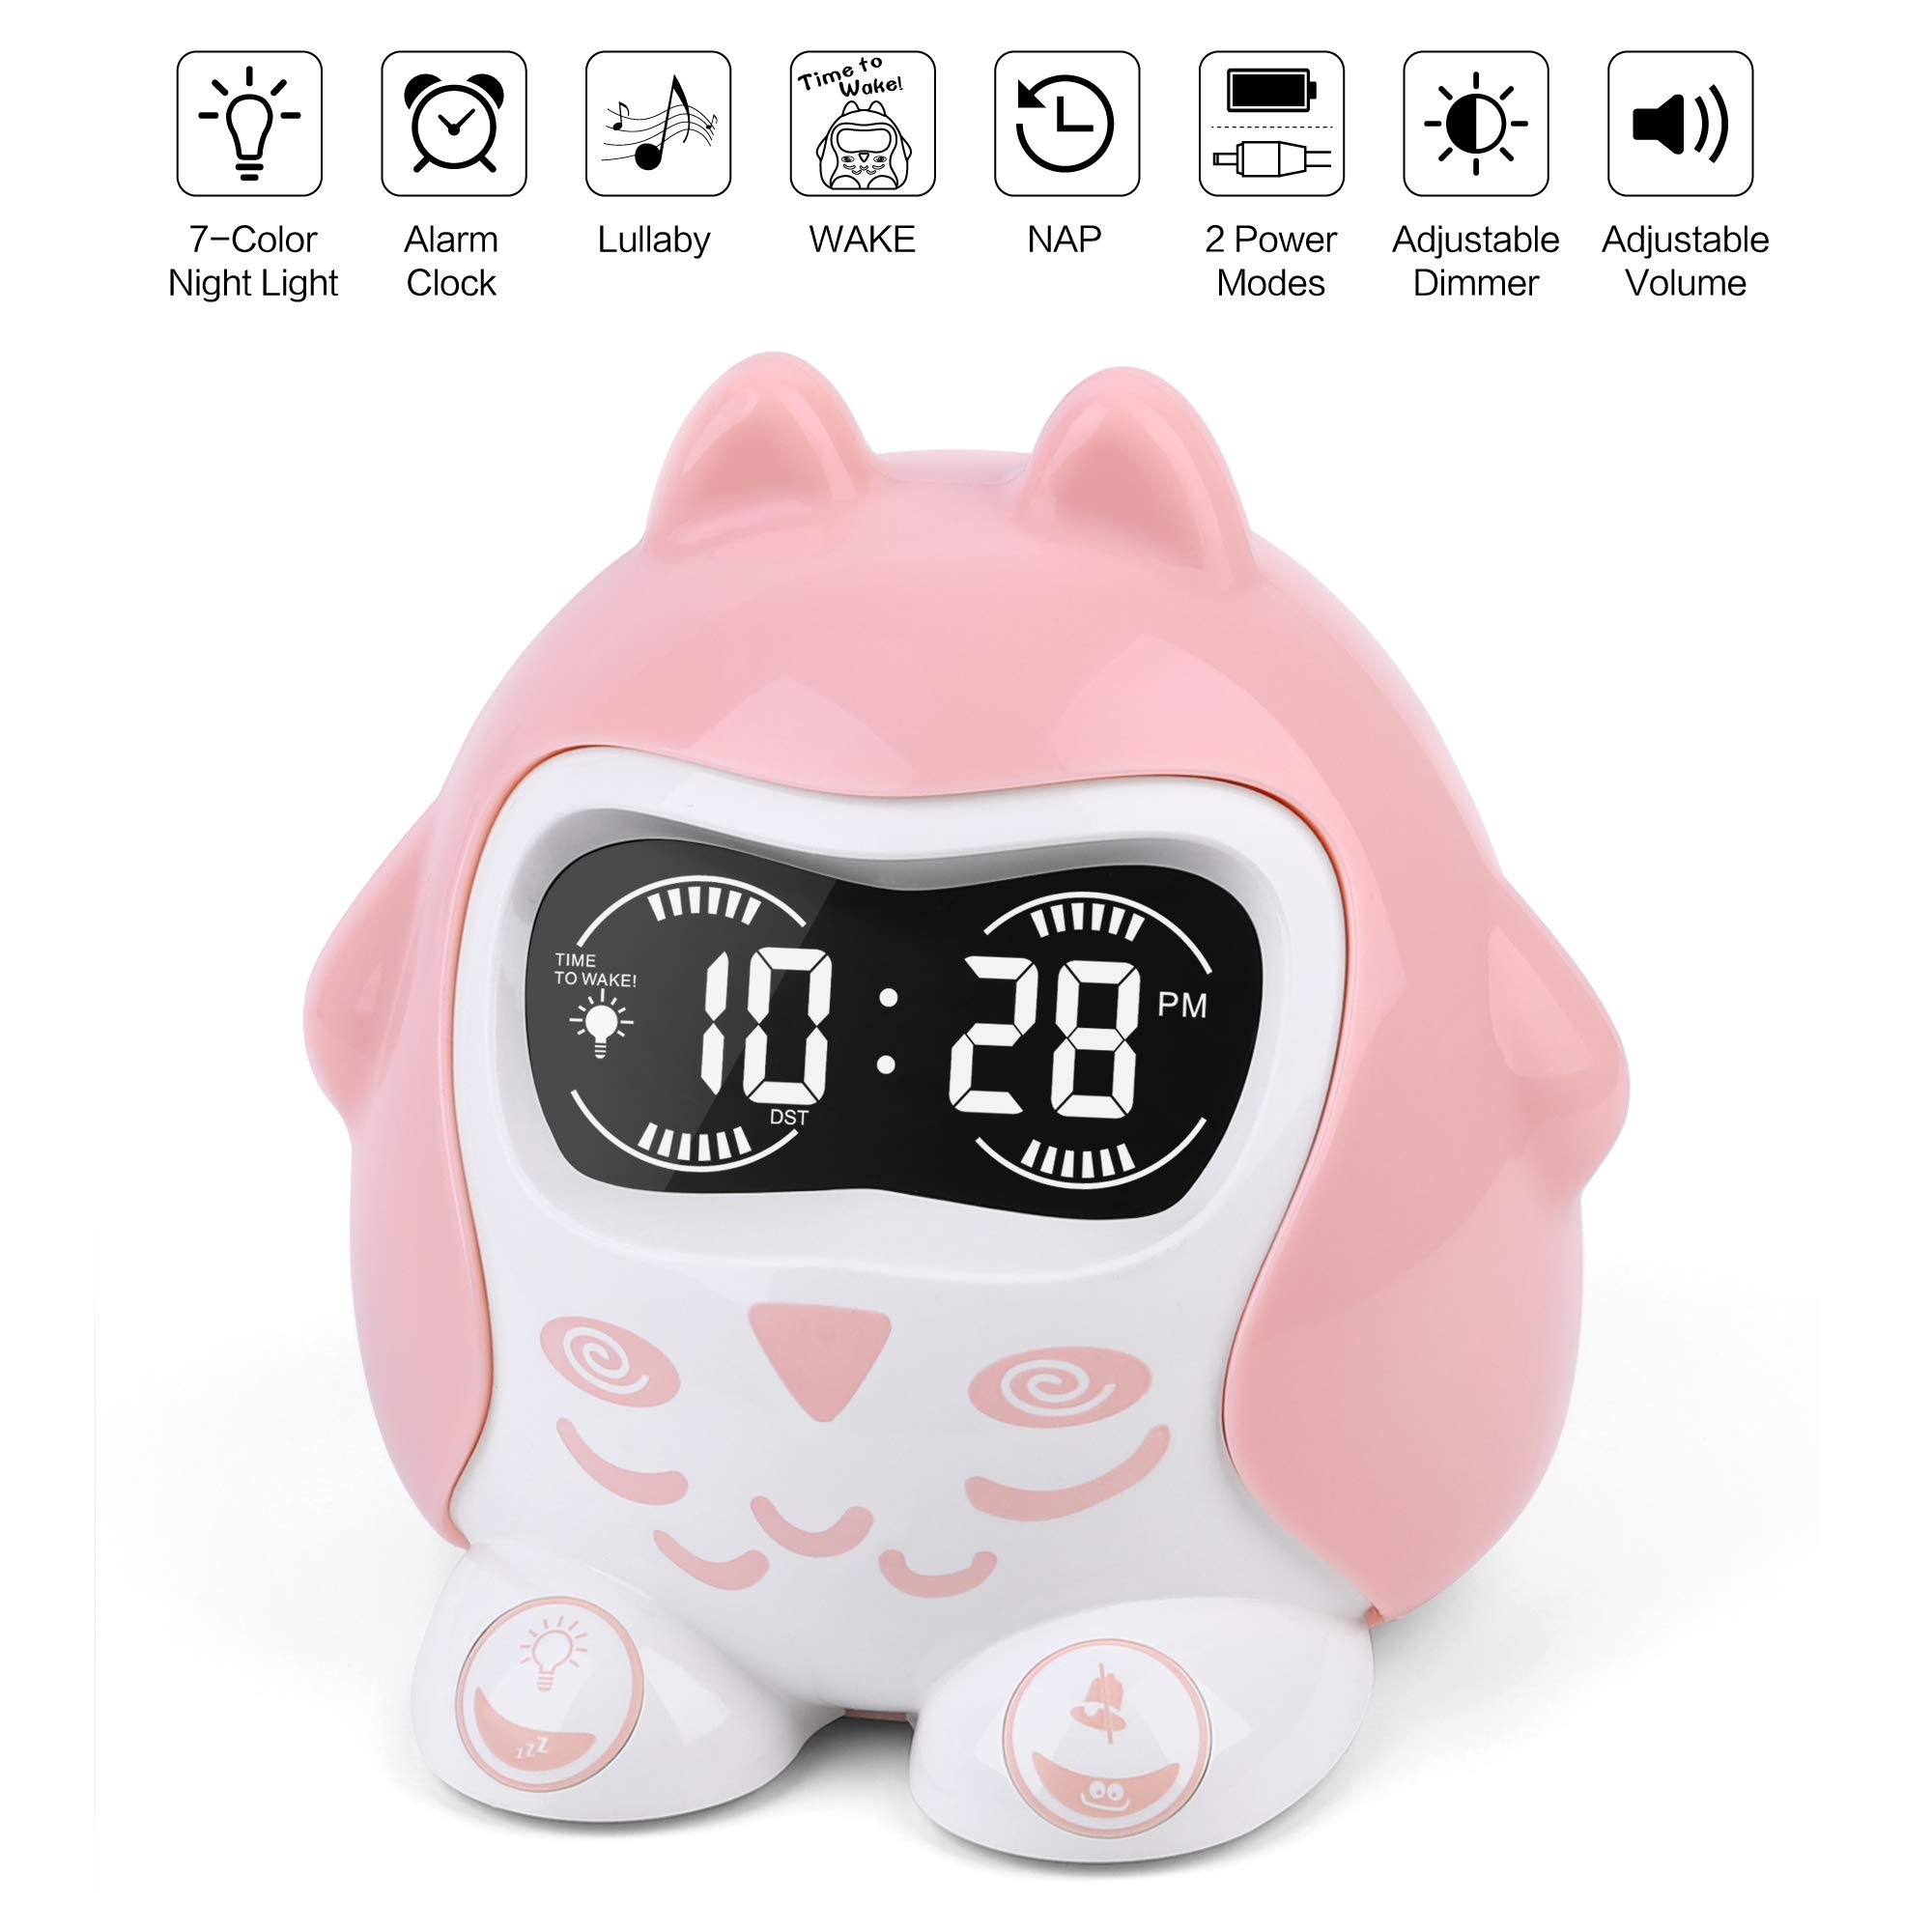 White Noise Sound Machine, Kids Sleep Trainer&Time to Wake Alarm Clock, Baby Sleep Soother with 9 Sounds&Lullabies, Portable Sound Therapy&7 Colored Night Light, Timer, NAP, Plug In Or Battery Powered by PPLEE